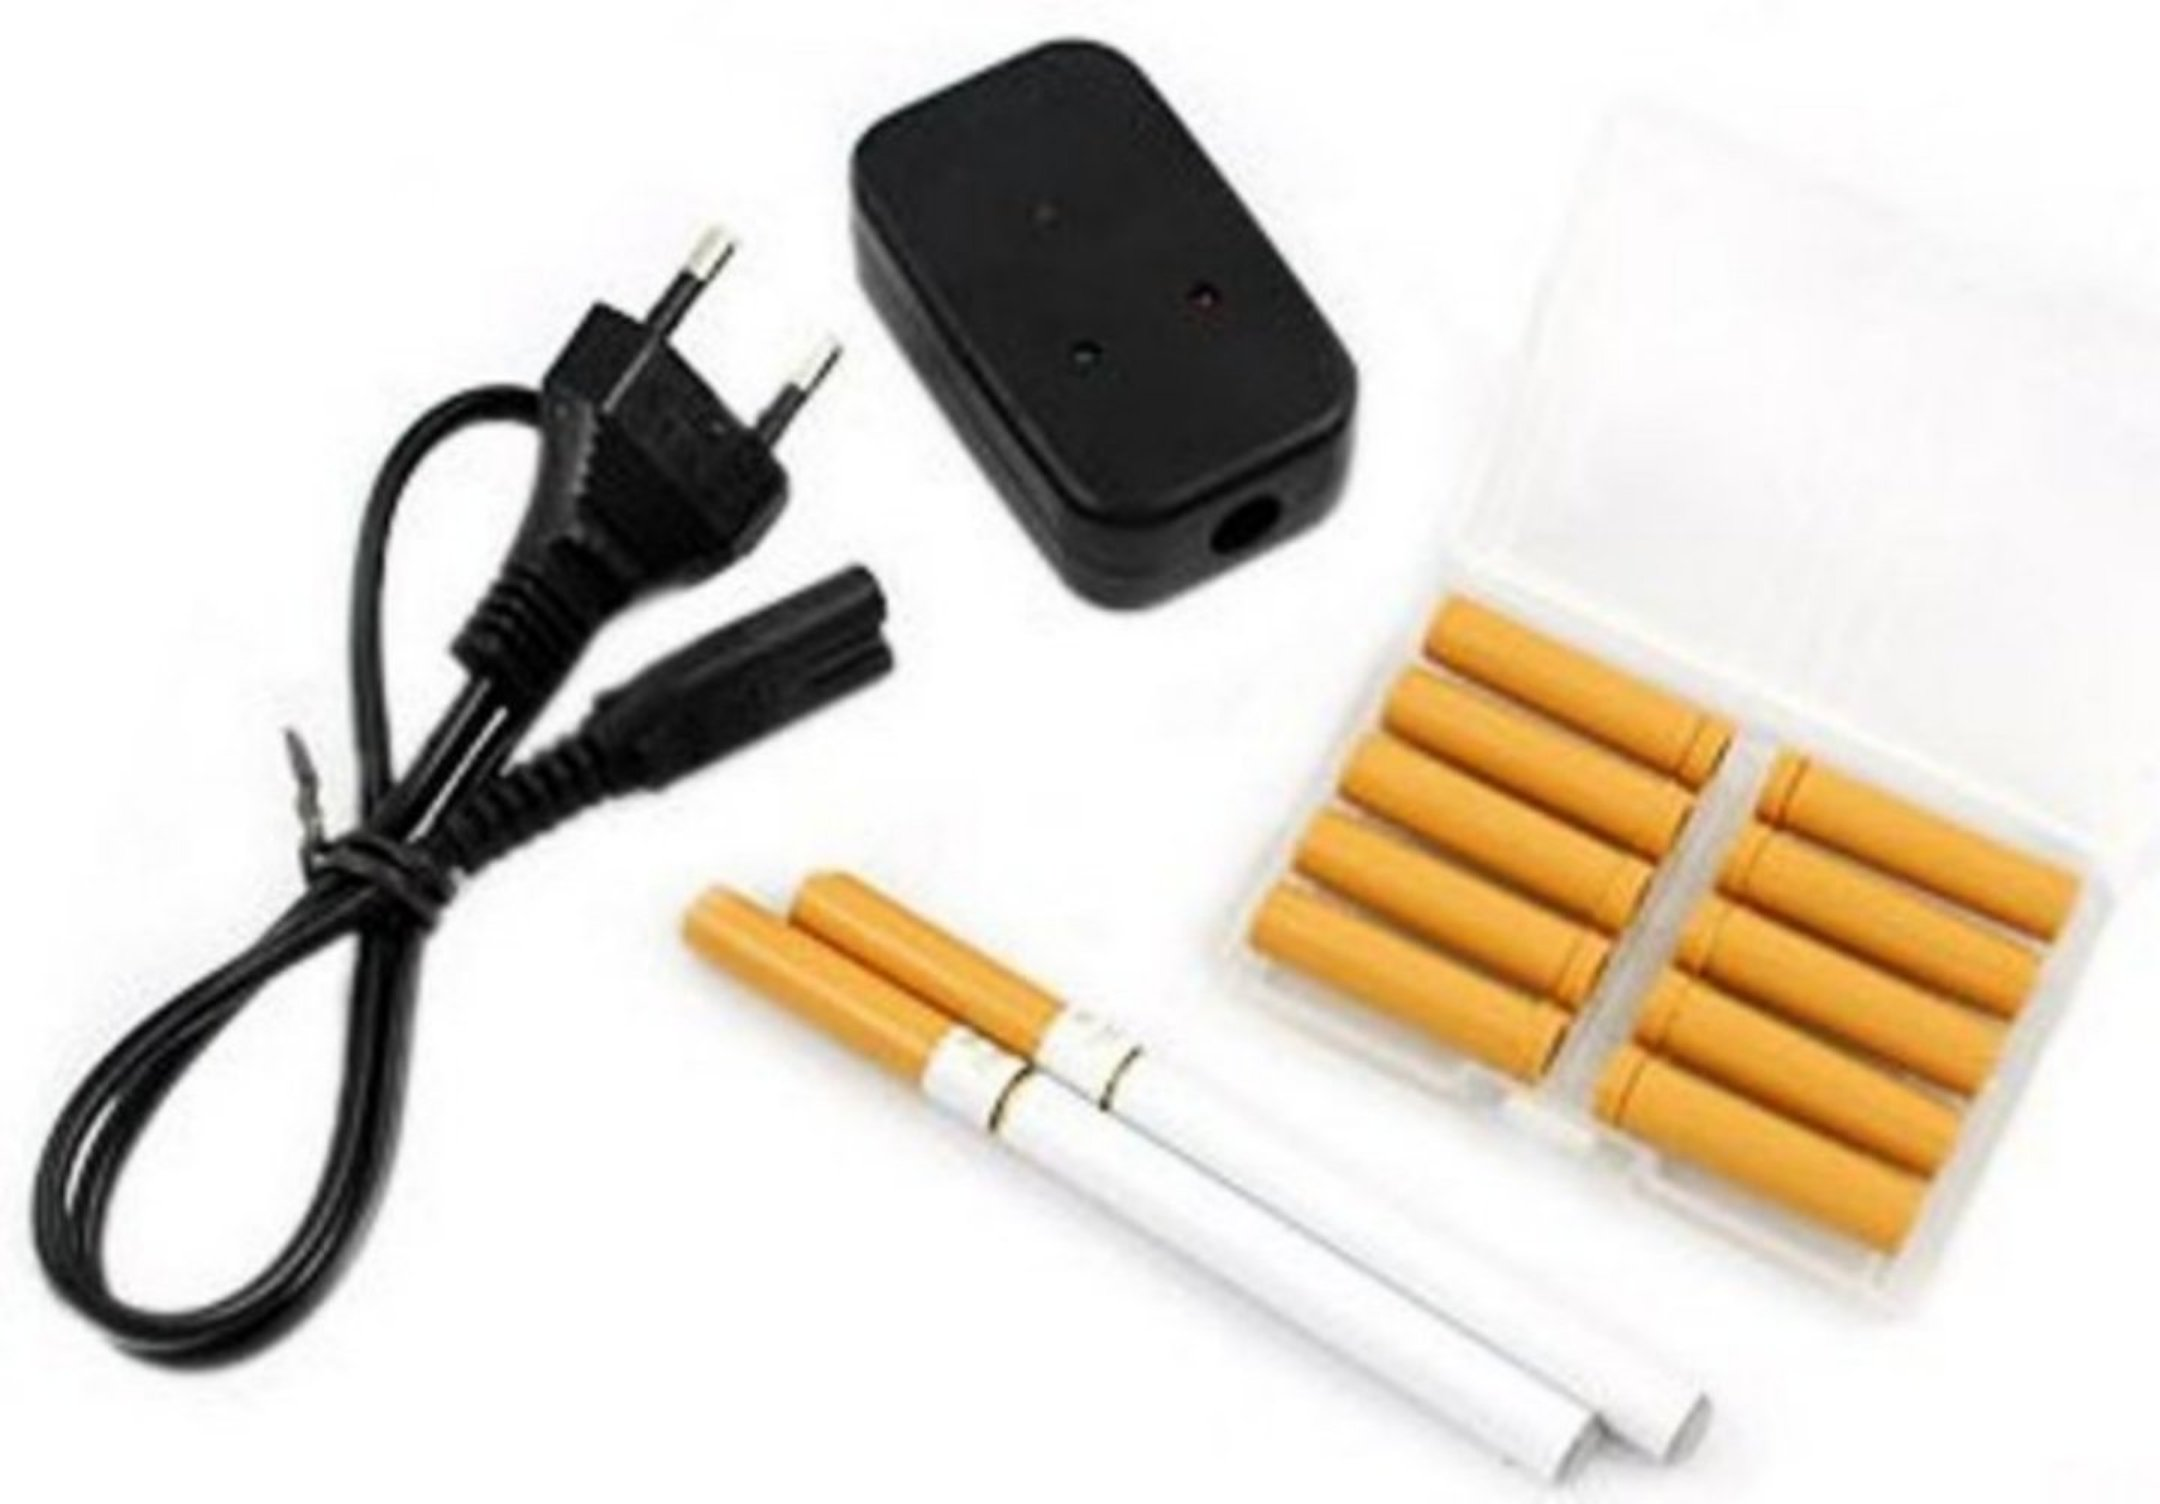 ELECTRONIC CIGARETTE Reviews, Ingredients, Price - MouthShut com